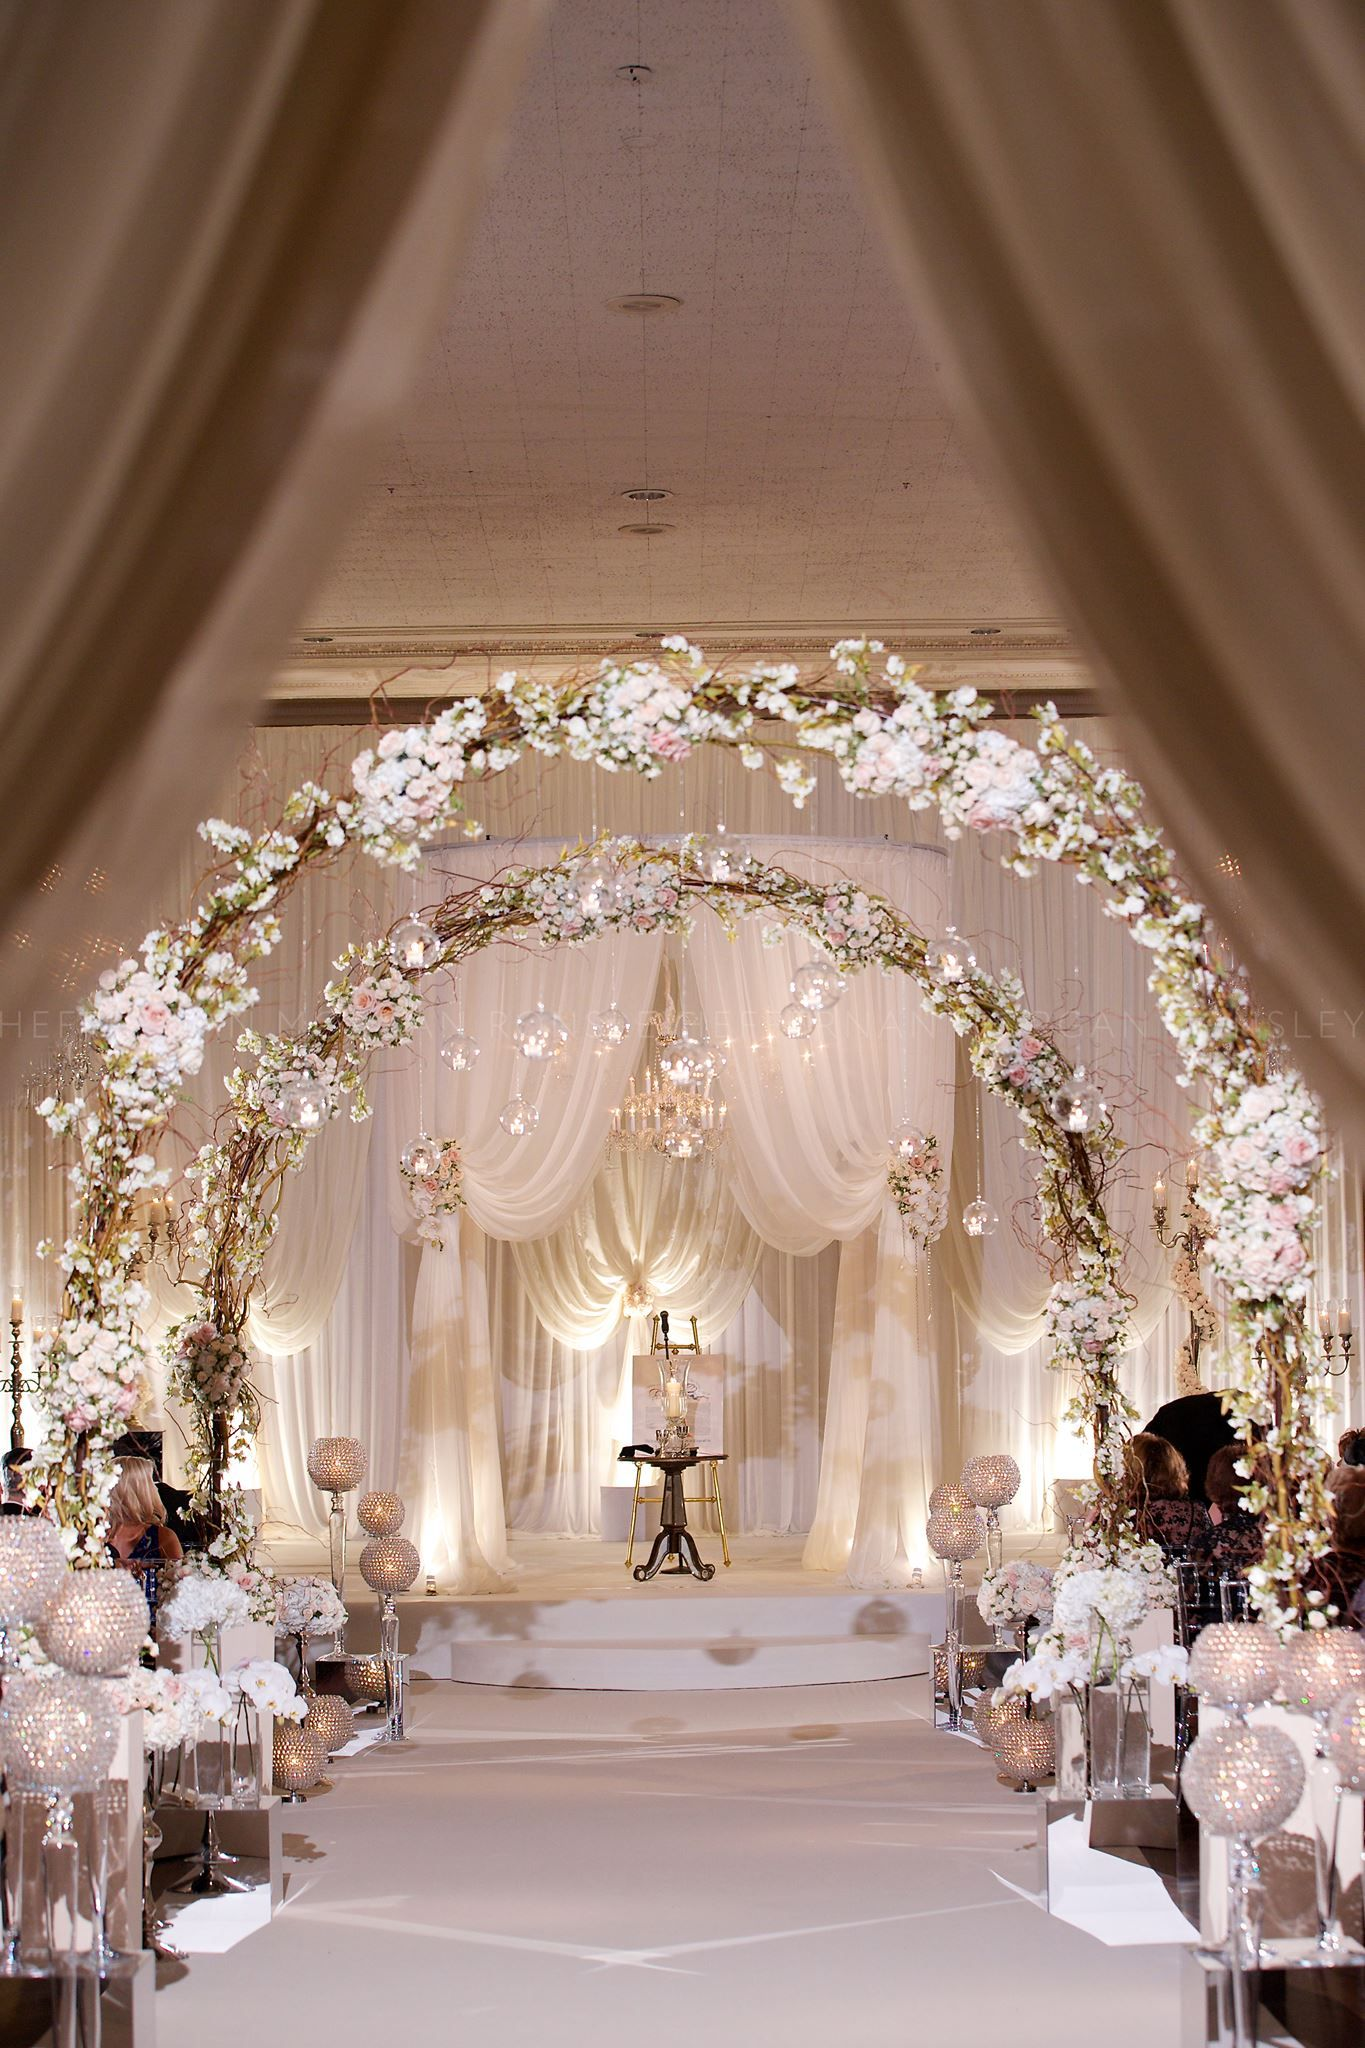 Pin by Monica Marcial on Wedding Pinterest Perfect wedding